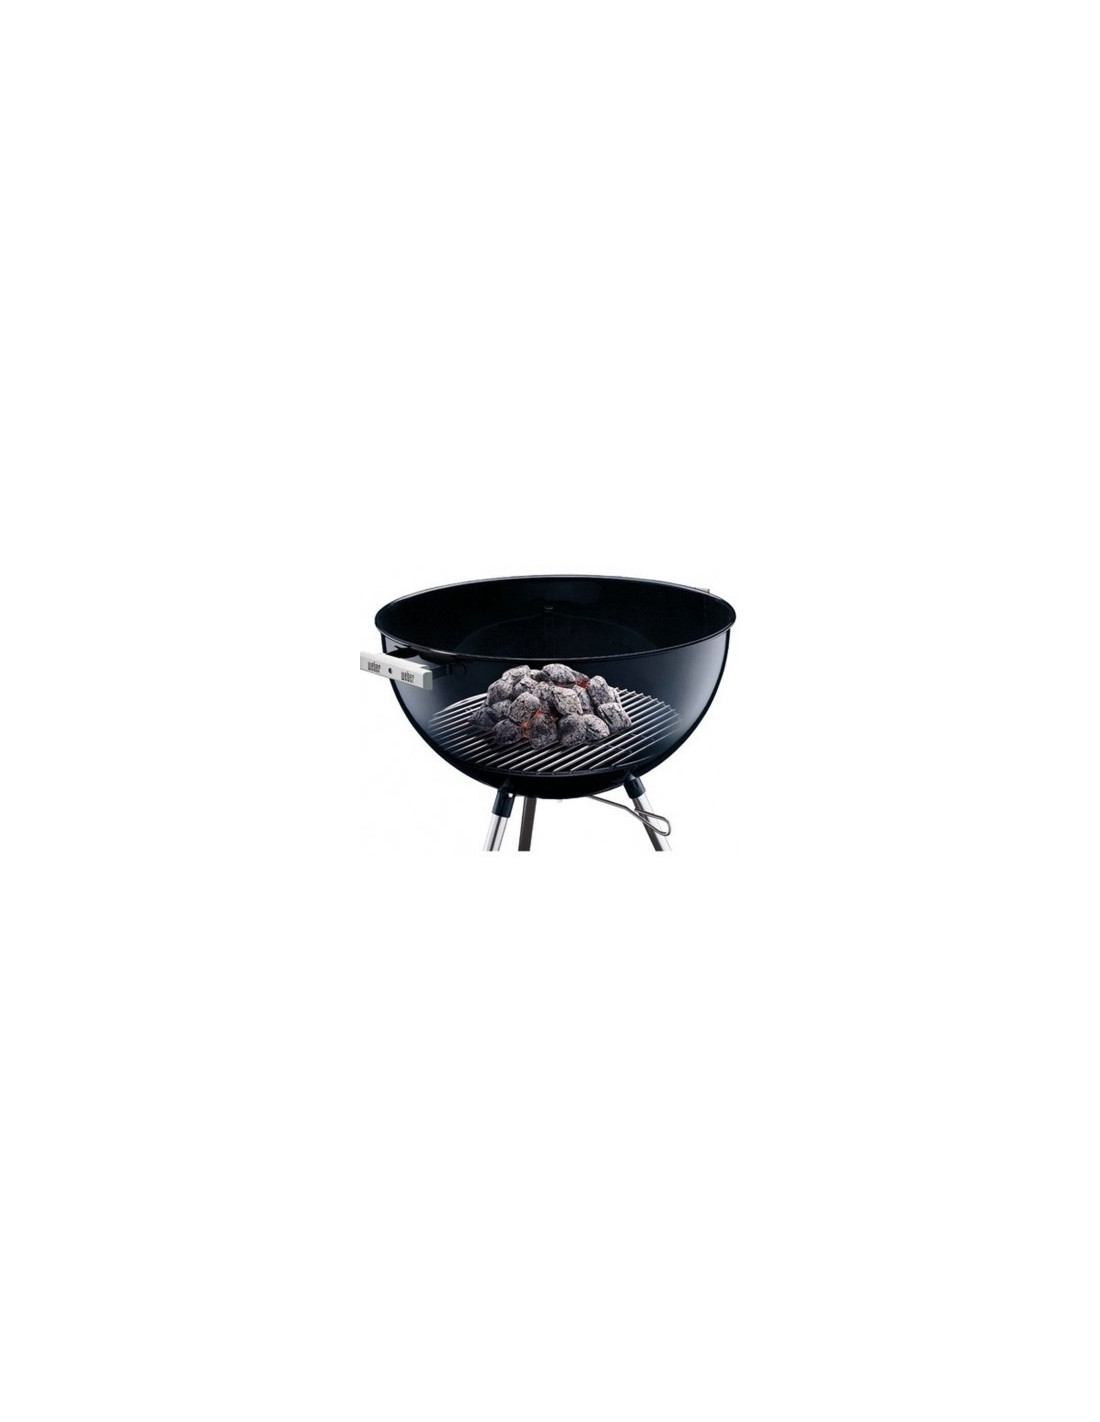 accessoire barbecue grille foy re 57 cm bbq. Black Bedroom Furniture Sets. Home Design Ideas